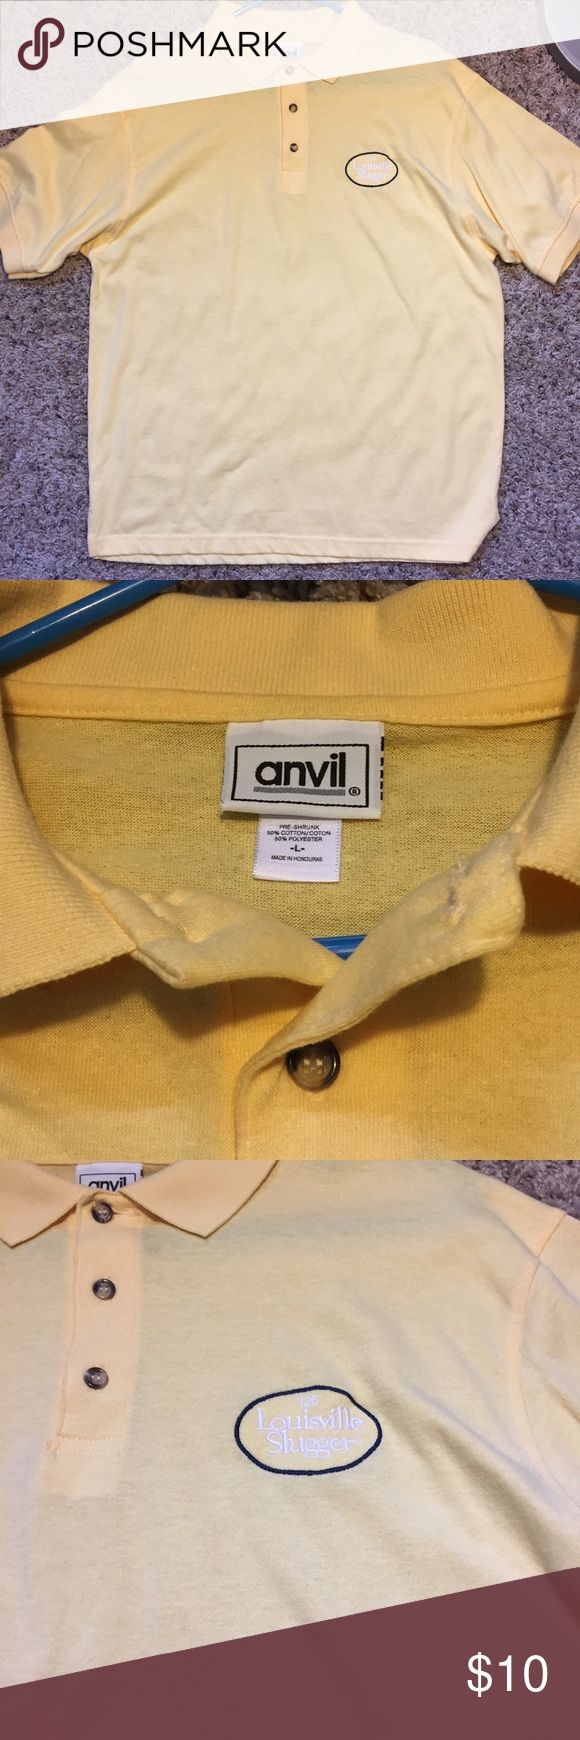 """Men's Polo shirt. Yellow Polo shirt with """"Louisville Slugger"""" embroidered on front. Never worn. No stains or wear. anvil Shirts Polos"""